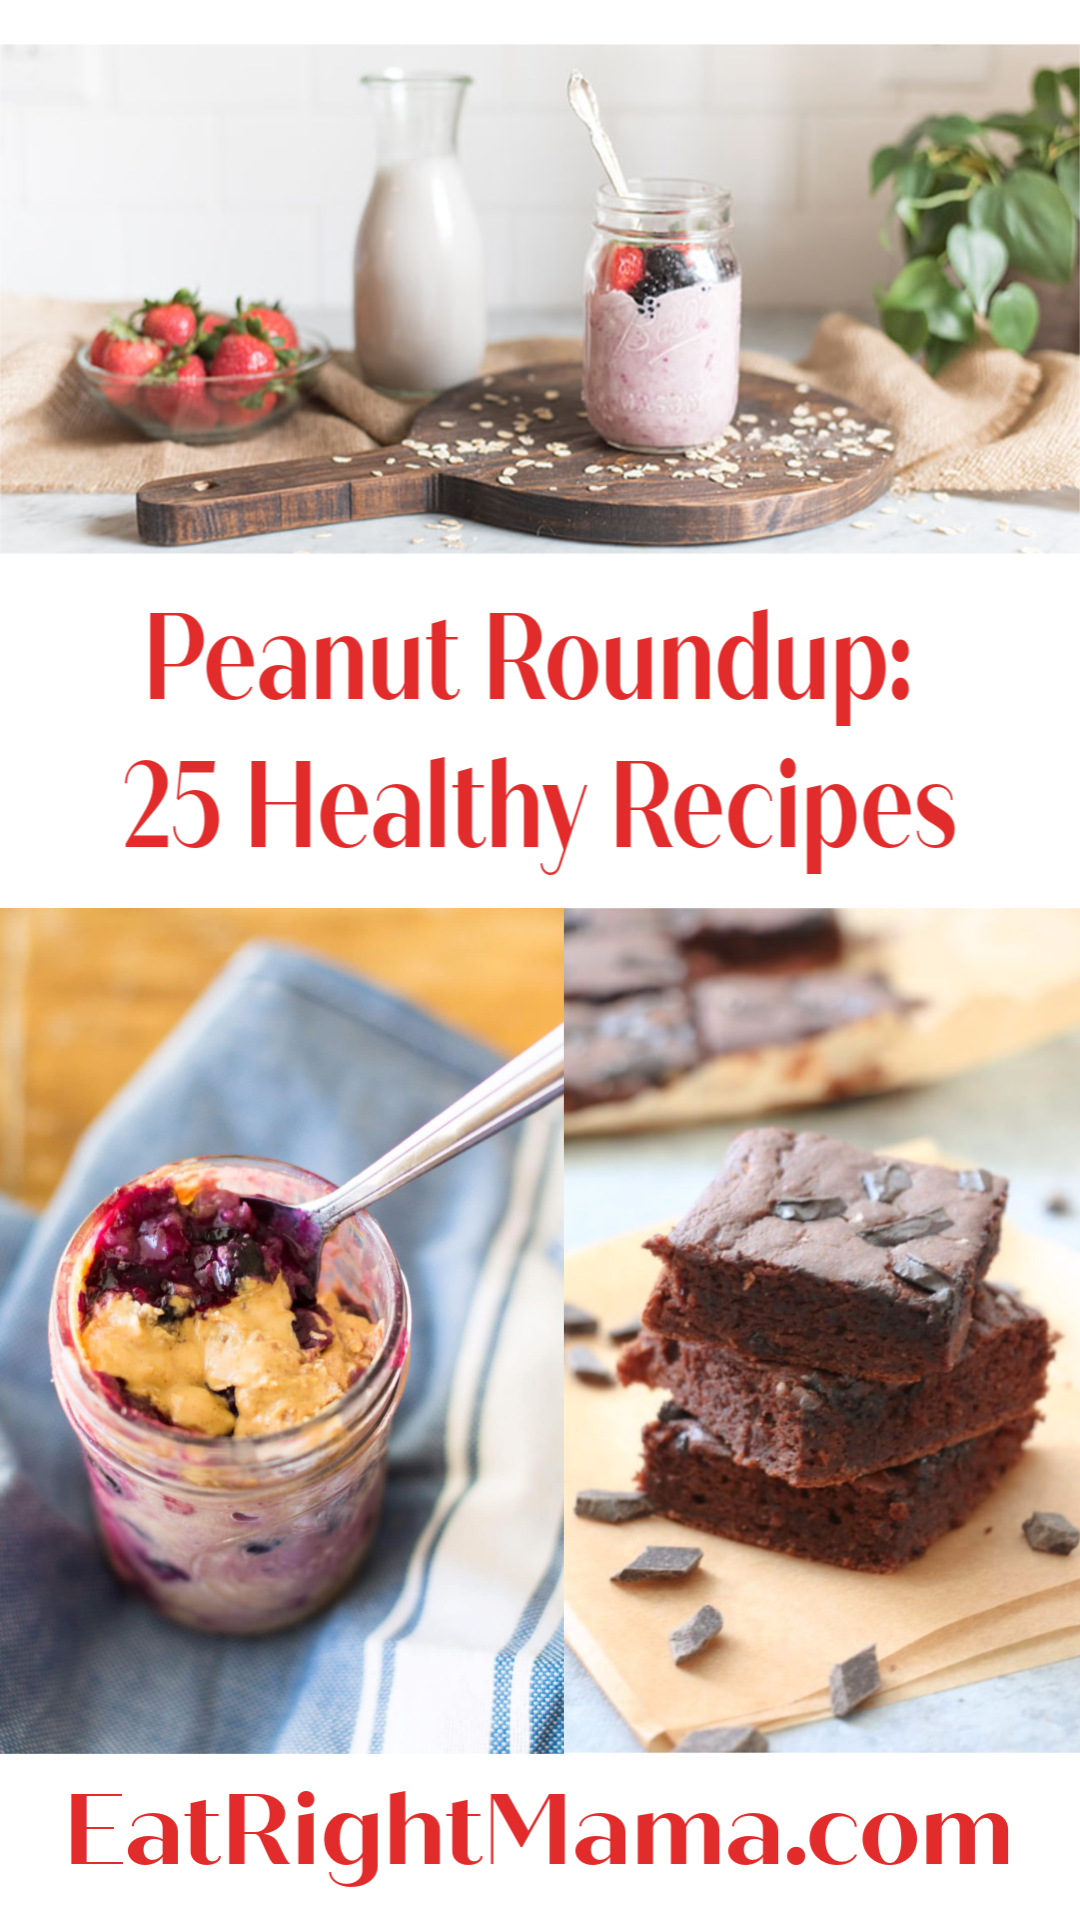 Celebrate #NationalPeanutMonth with these healthy #recipes. #peanuts #eatinghealthy /bit.ly/2Ha5vKw